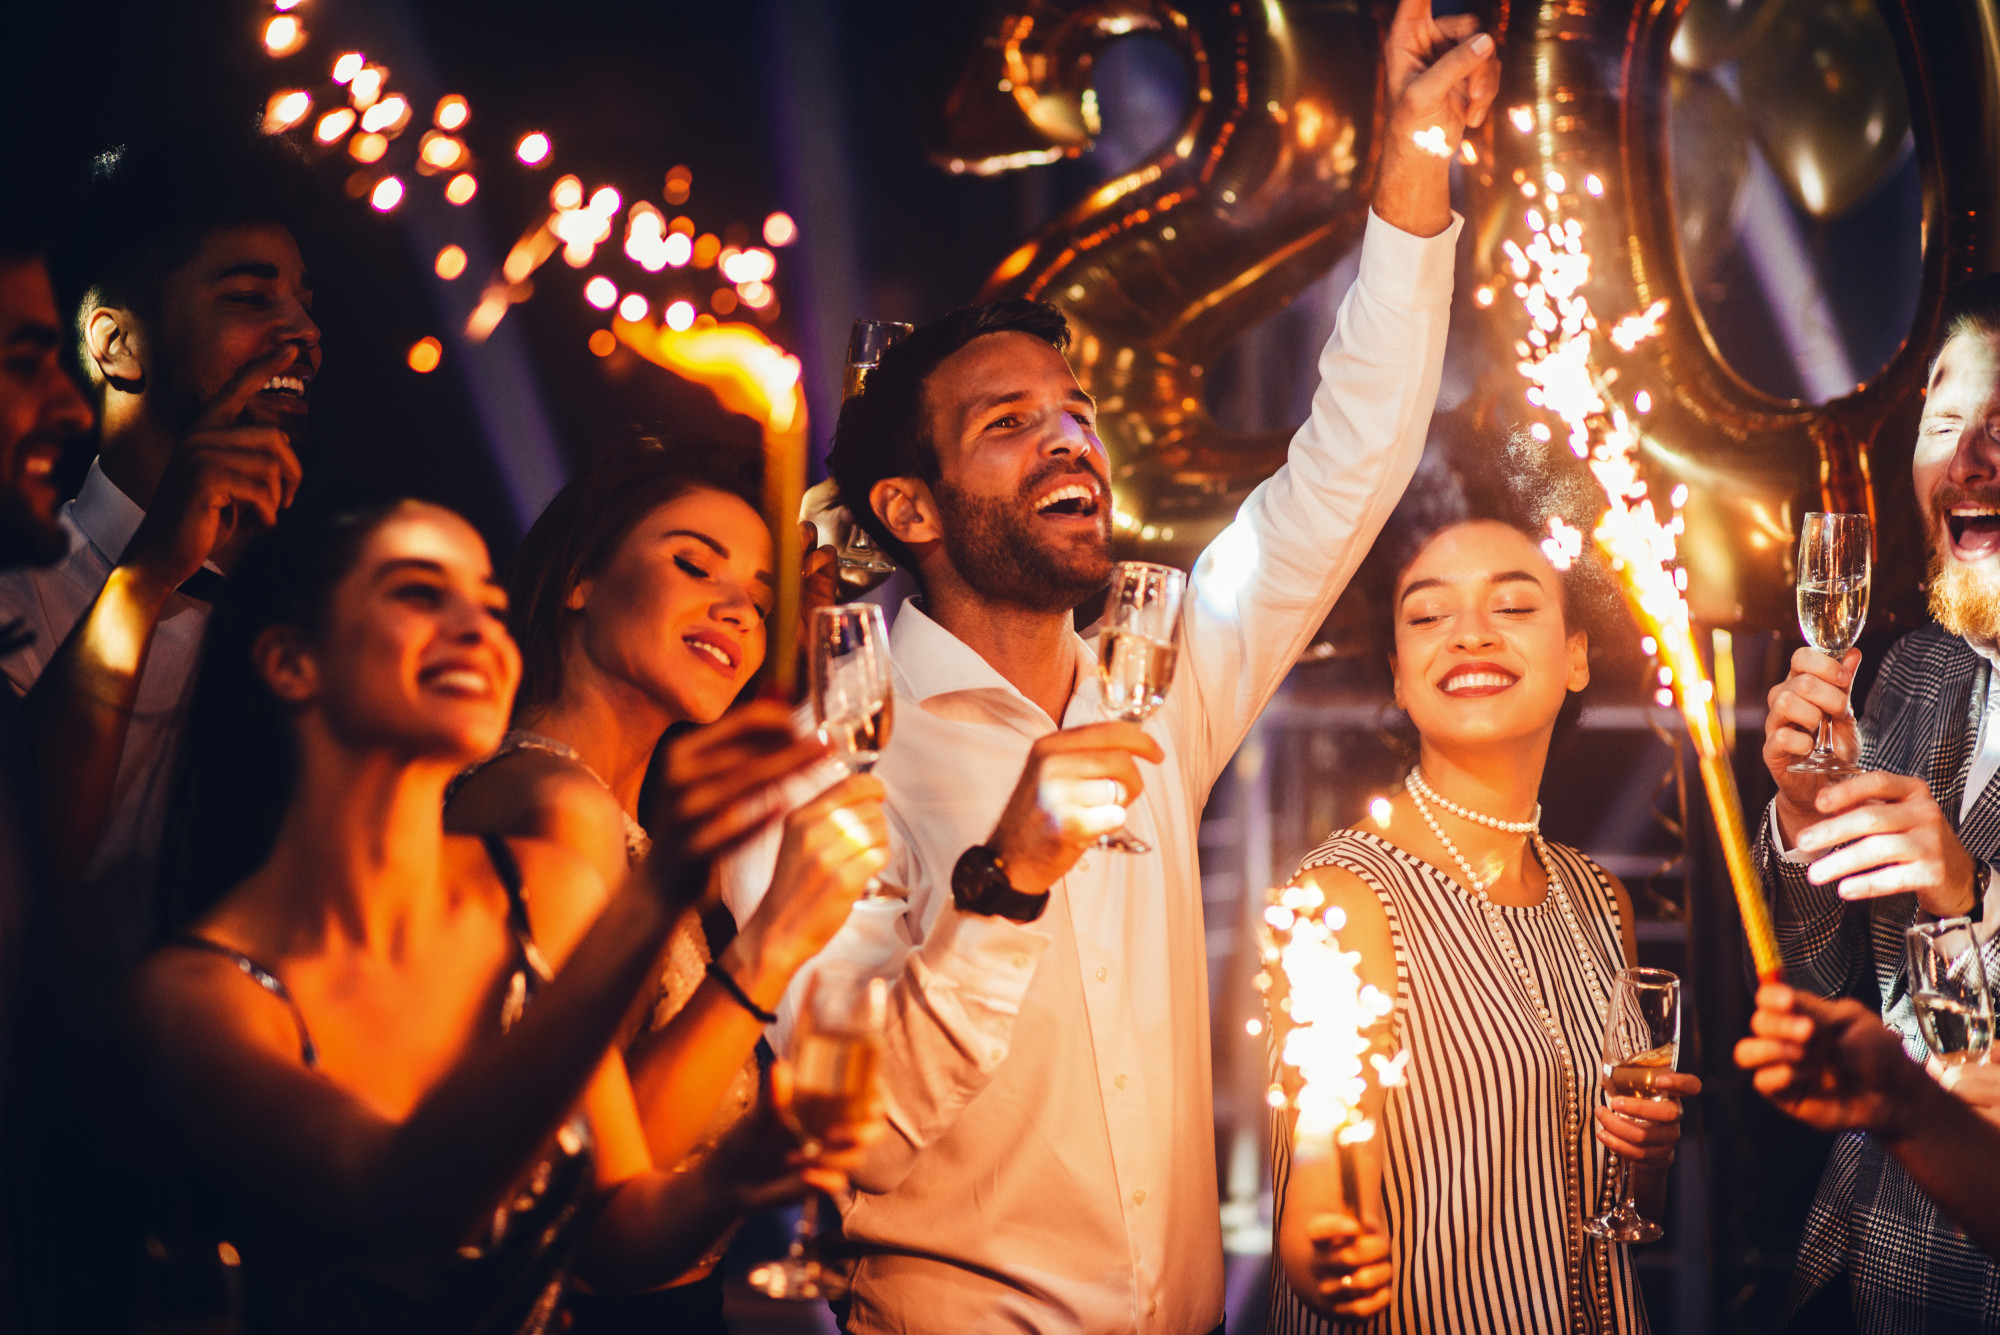 A Very Vegas New Year's: The Best Ways to Ring in 2020 in Las Vegas